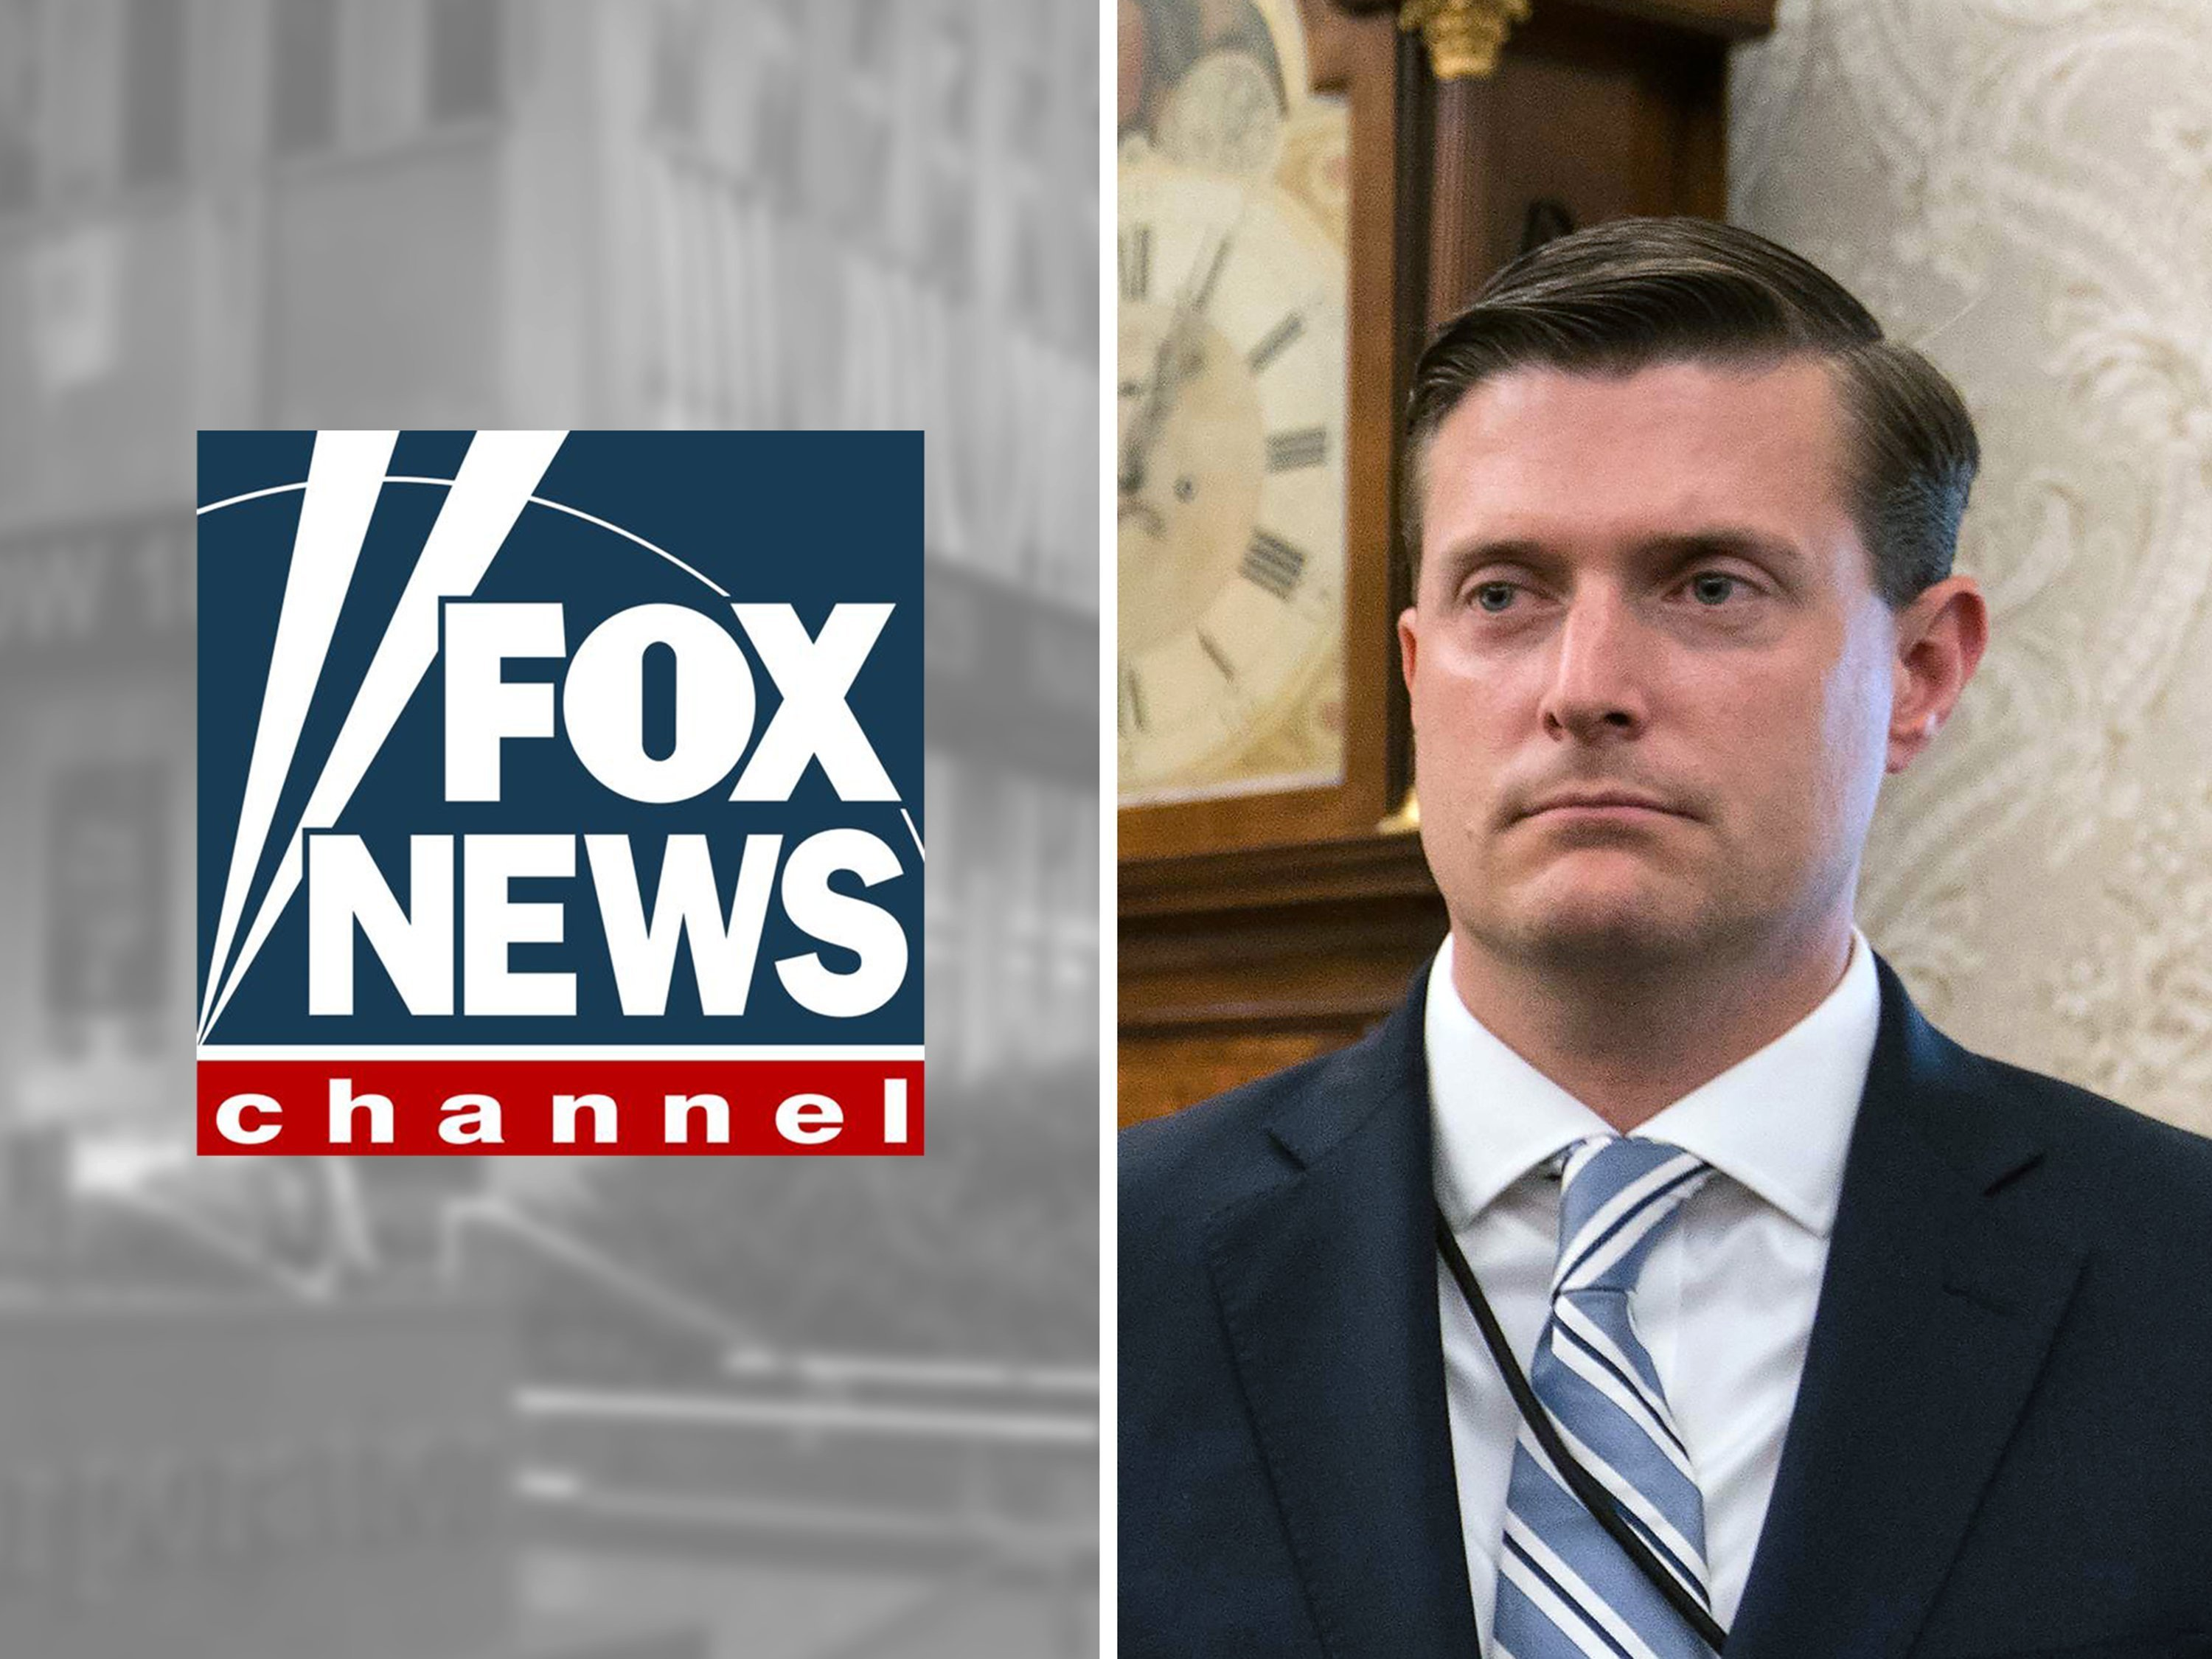 The Trump administration is reeling over domestic violence allegations against a top White House aide, Rob Porter. But you might not know it if you watch Fox News, where the disturbing story has been largely, and conspicuously, absent.